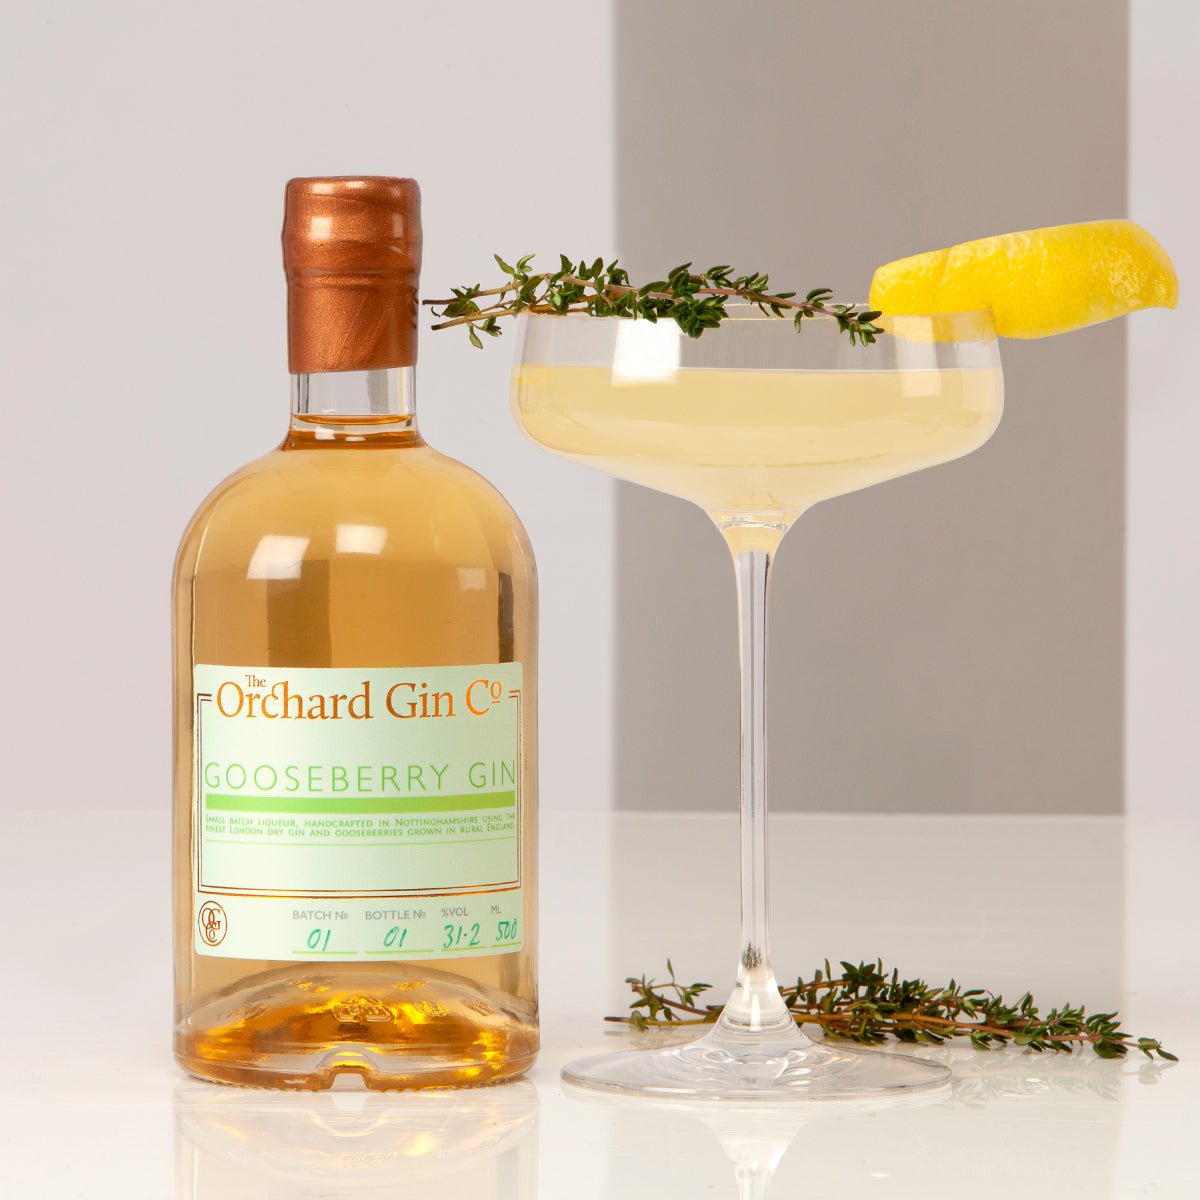 Gooseberry Gin - The Orchard Gin Co